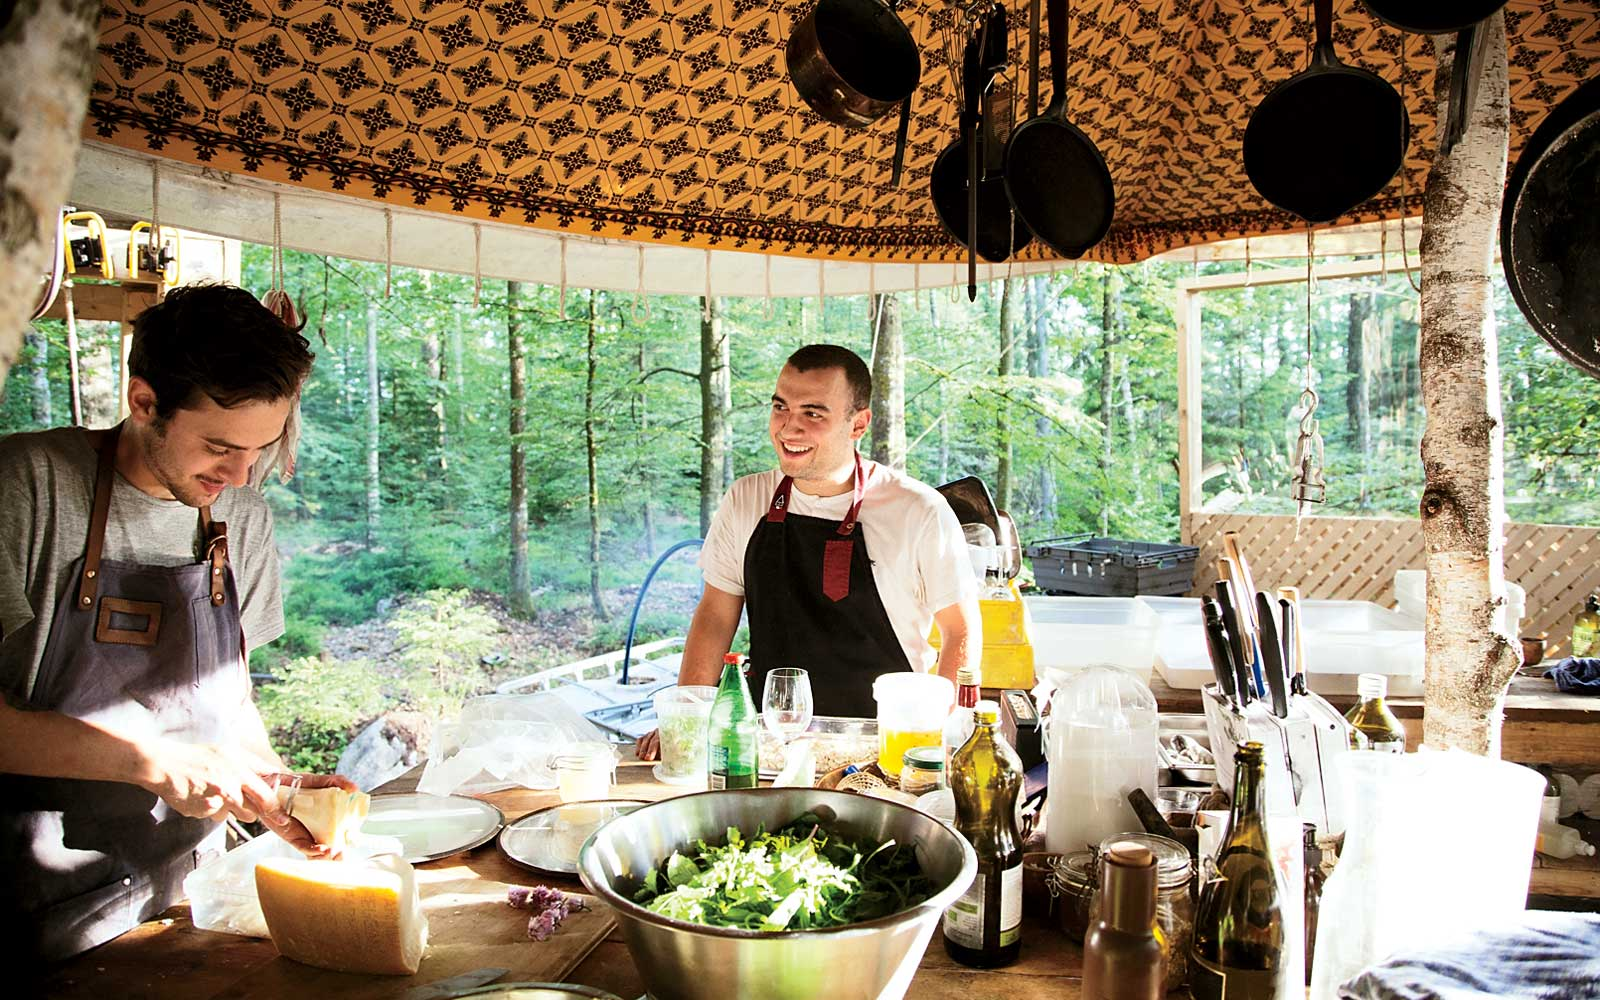 Outdoor kitchen at Stedsans in the Woods, in Sweden